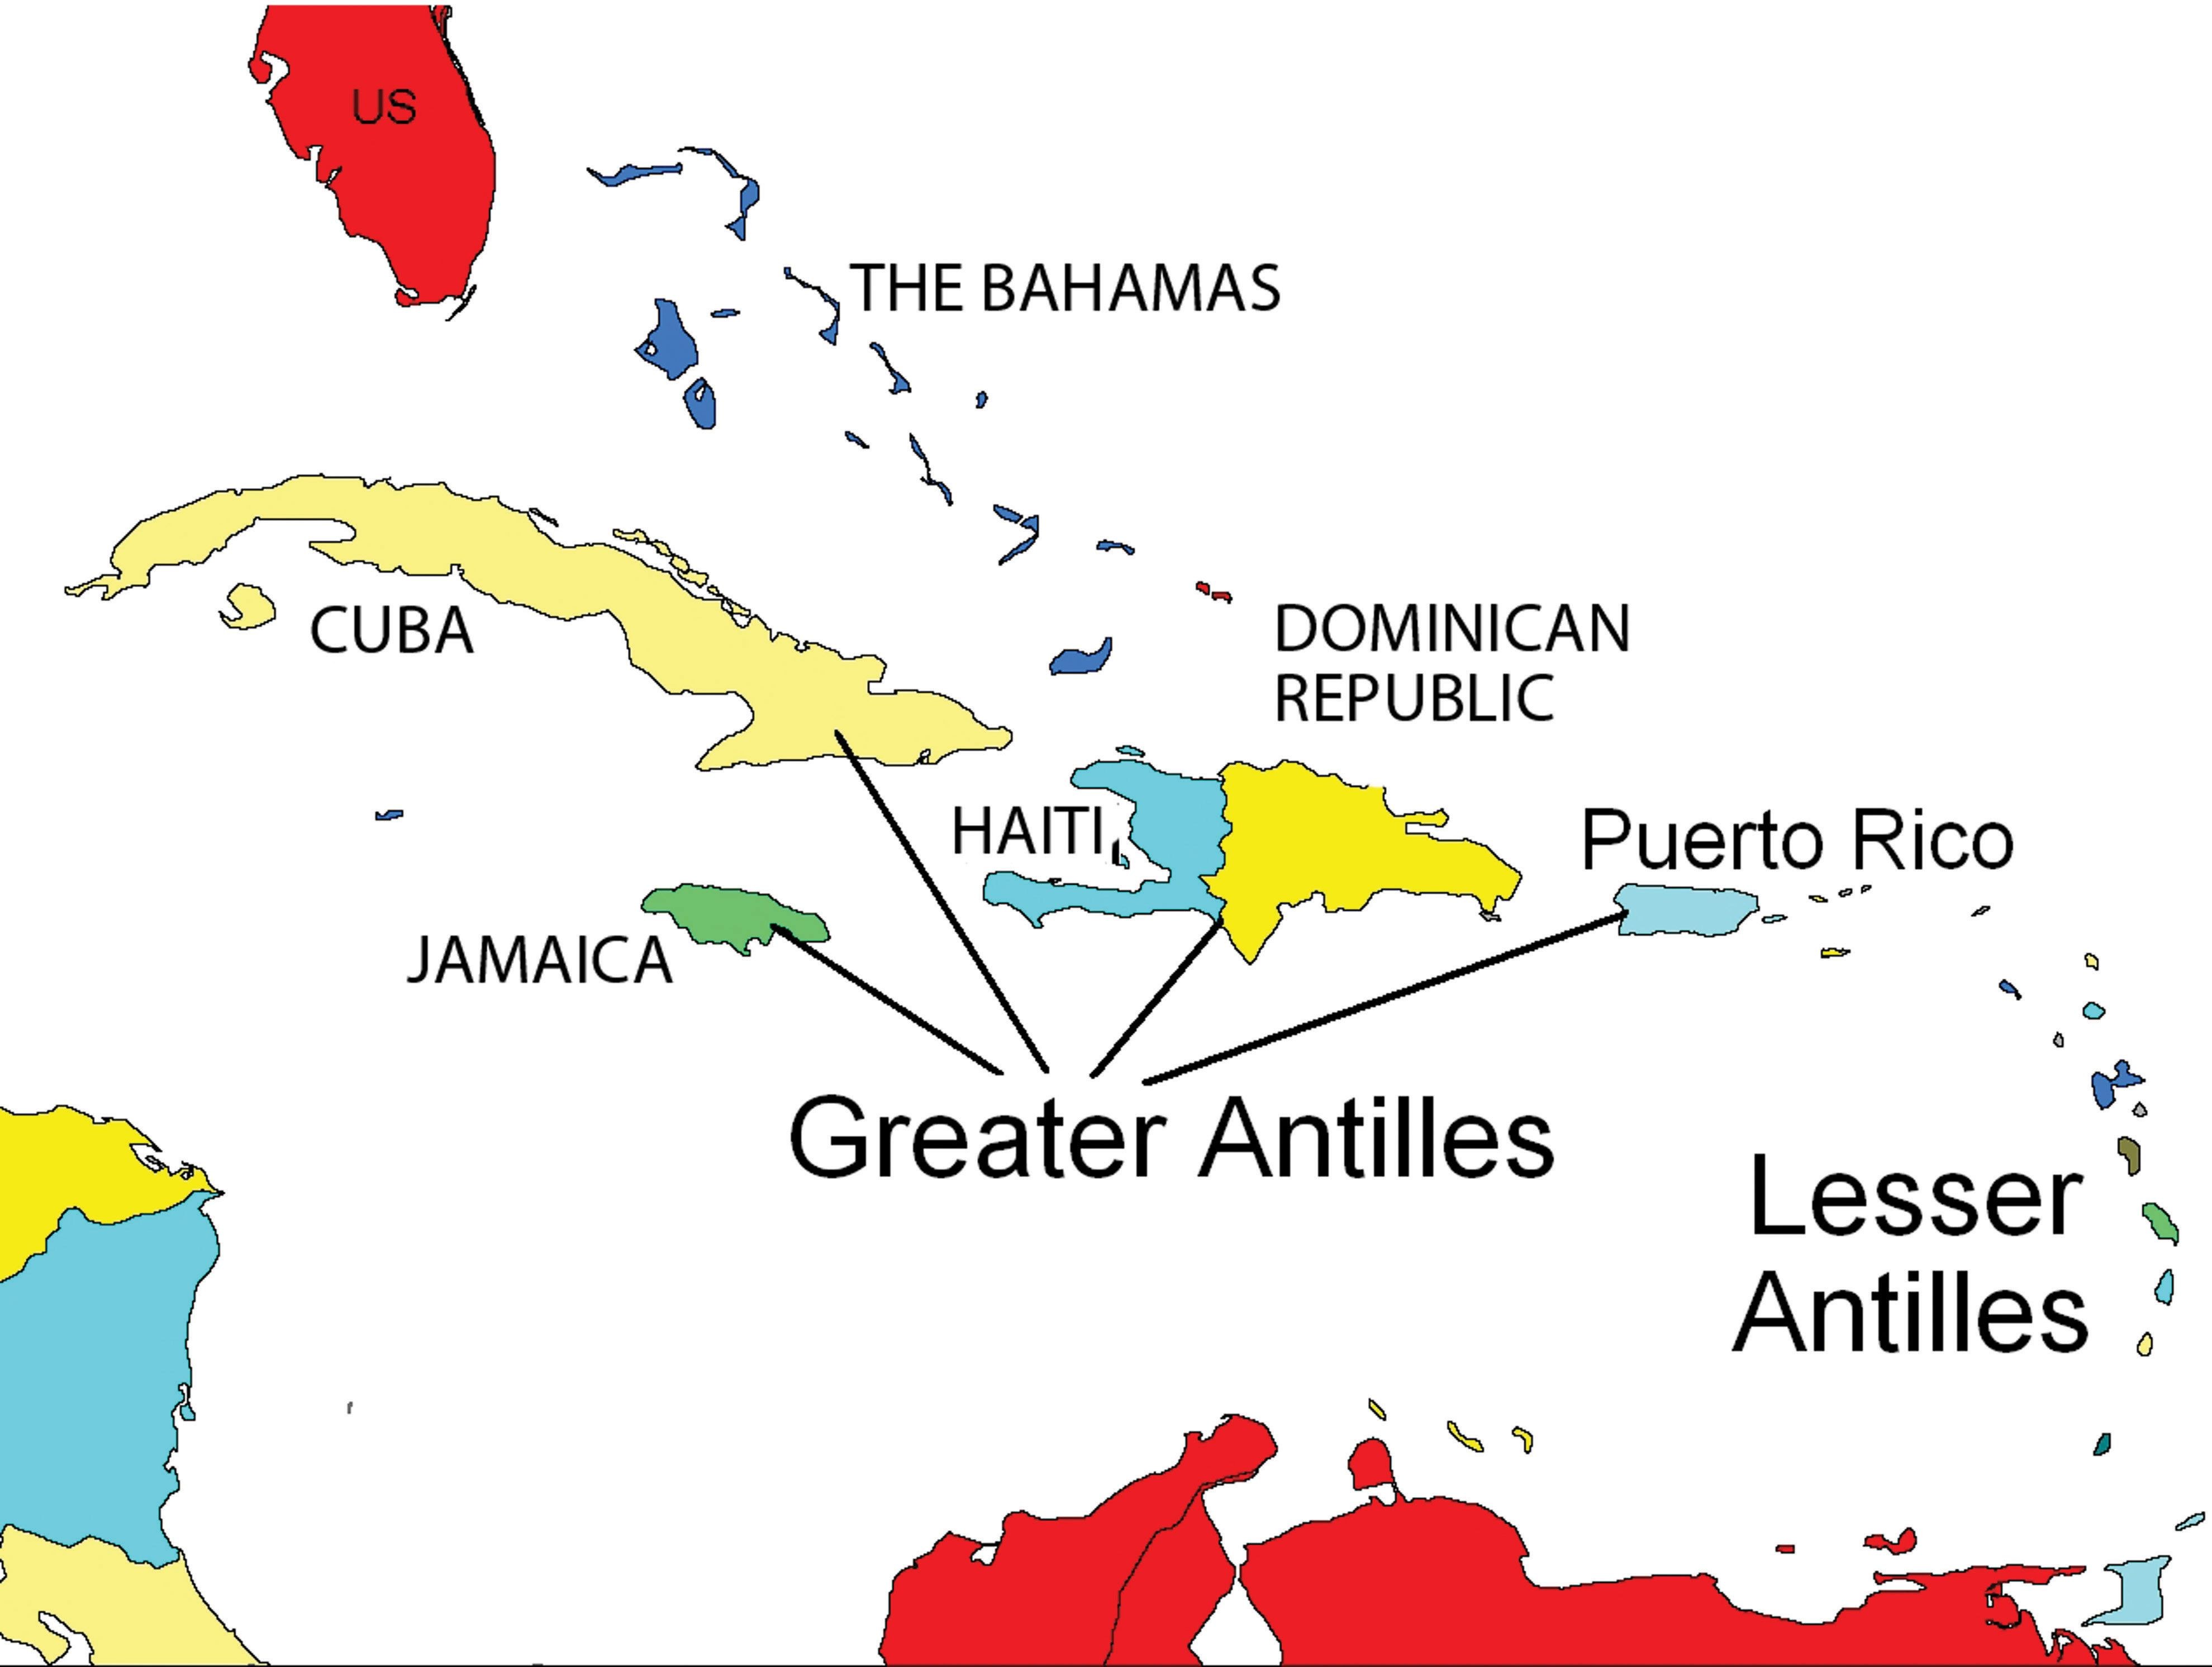 Caribbean Regions Of The Greater Antilles The Lesser